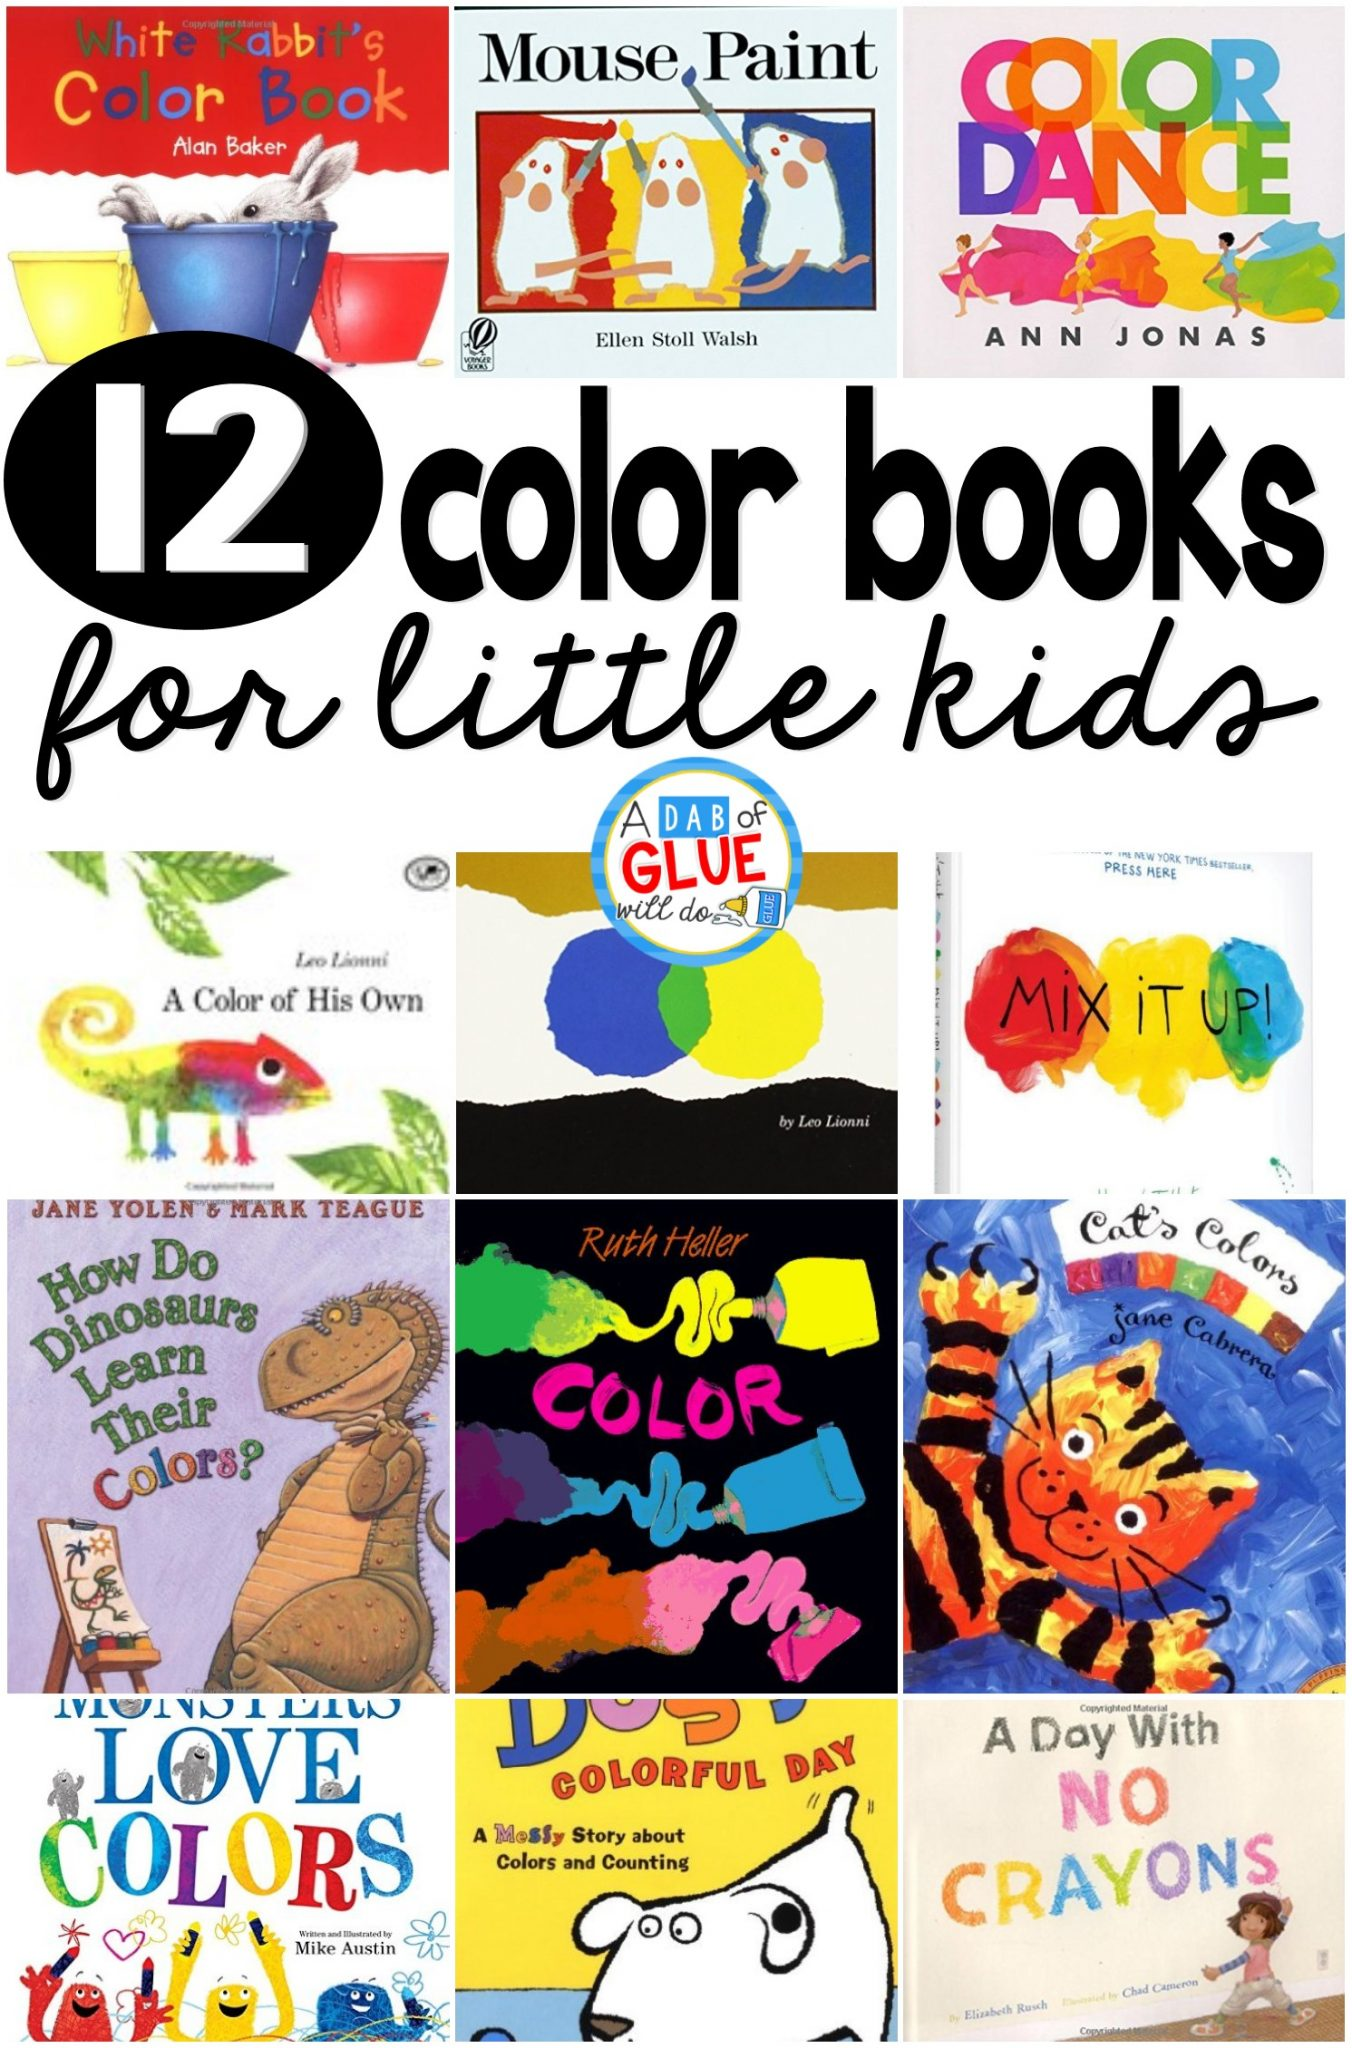 12 books about colors for little kids - A Dab of Glue Will Do